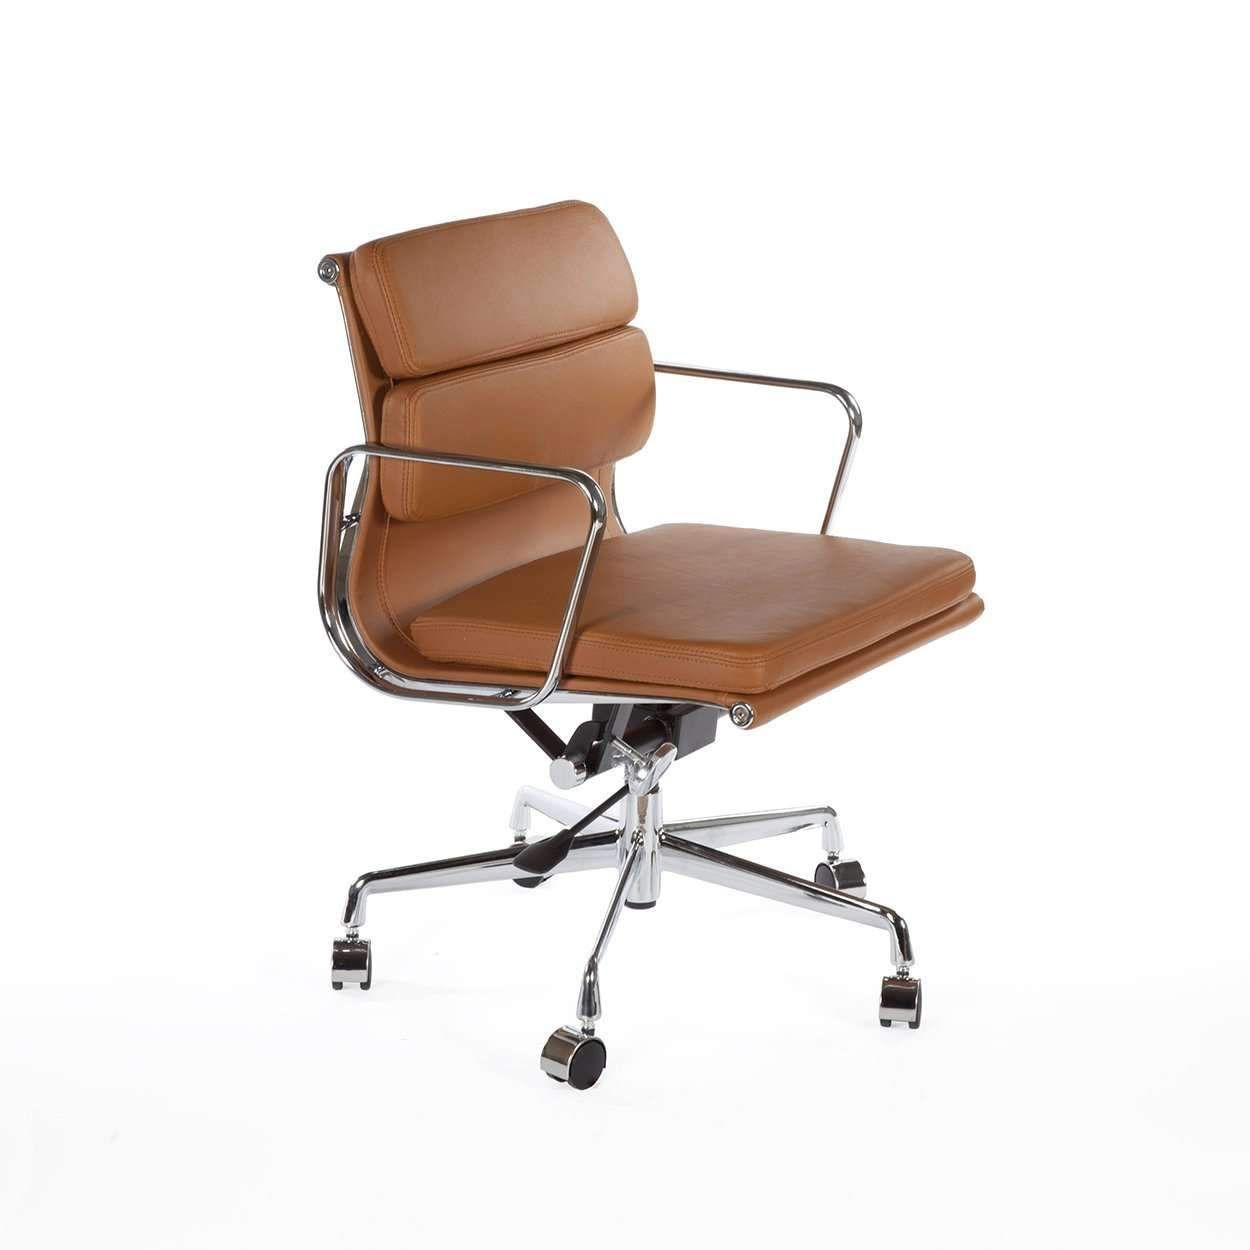 Mid Century Low Back Polstret Office Chair Brown Modern Desk Chair Mid Century Modern Desk Chair Mid Century Modern Office Chair